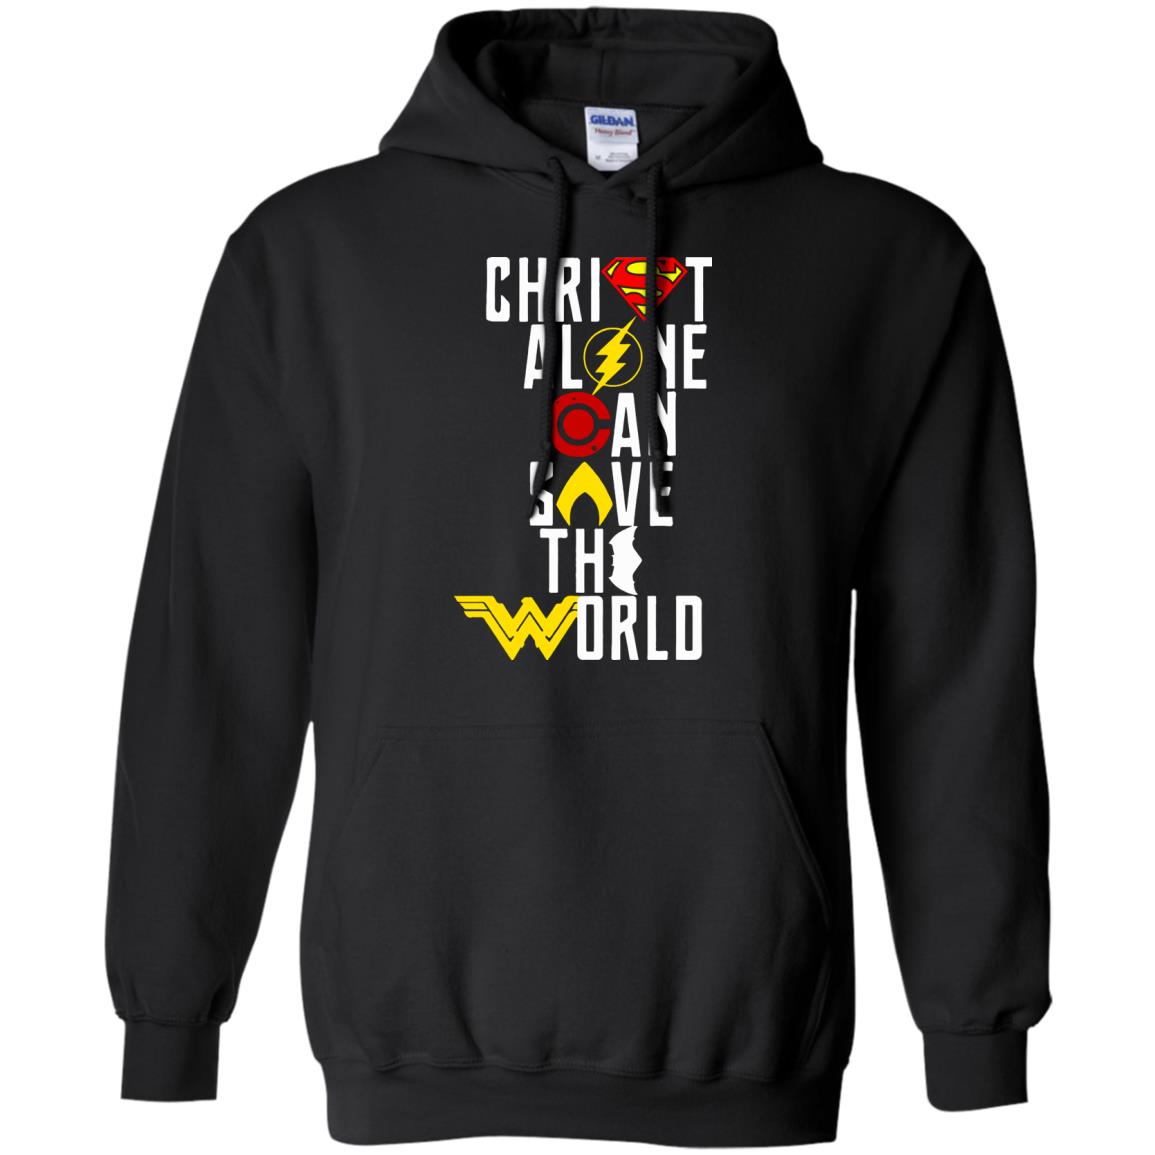 justice league: christ alone can save the world shirt, sweatshirts